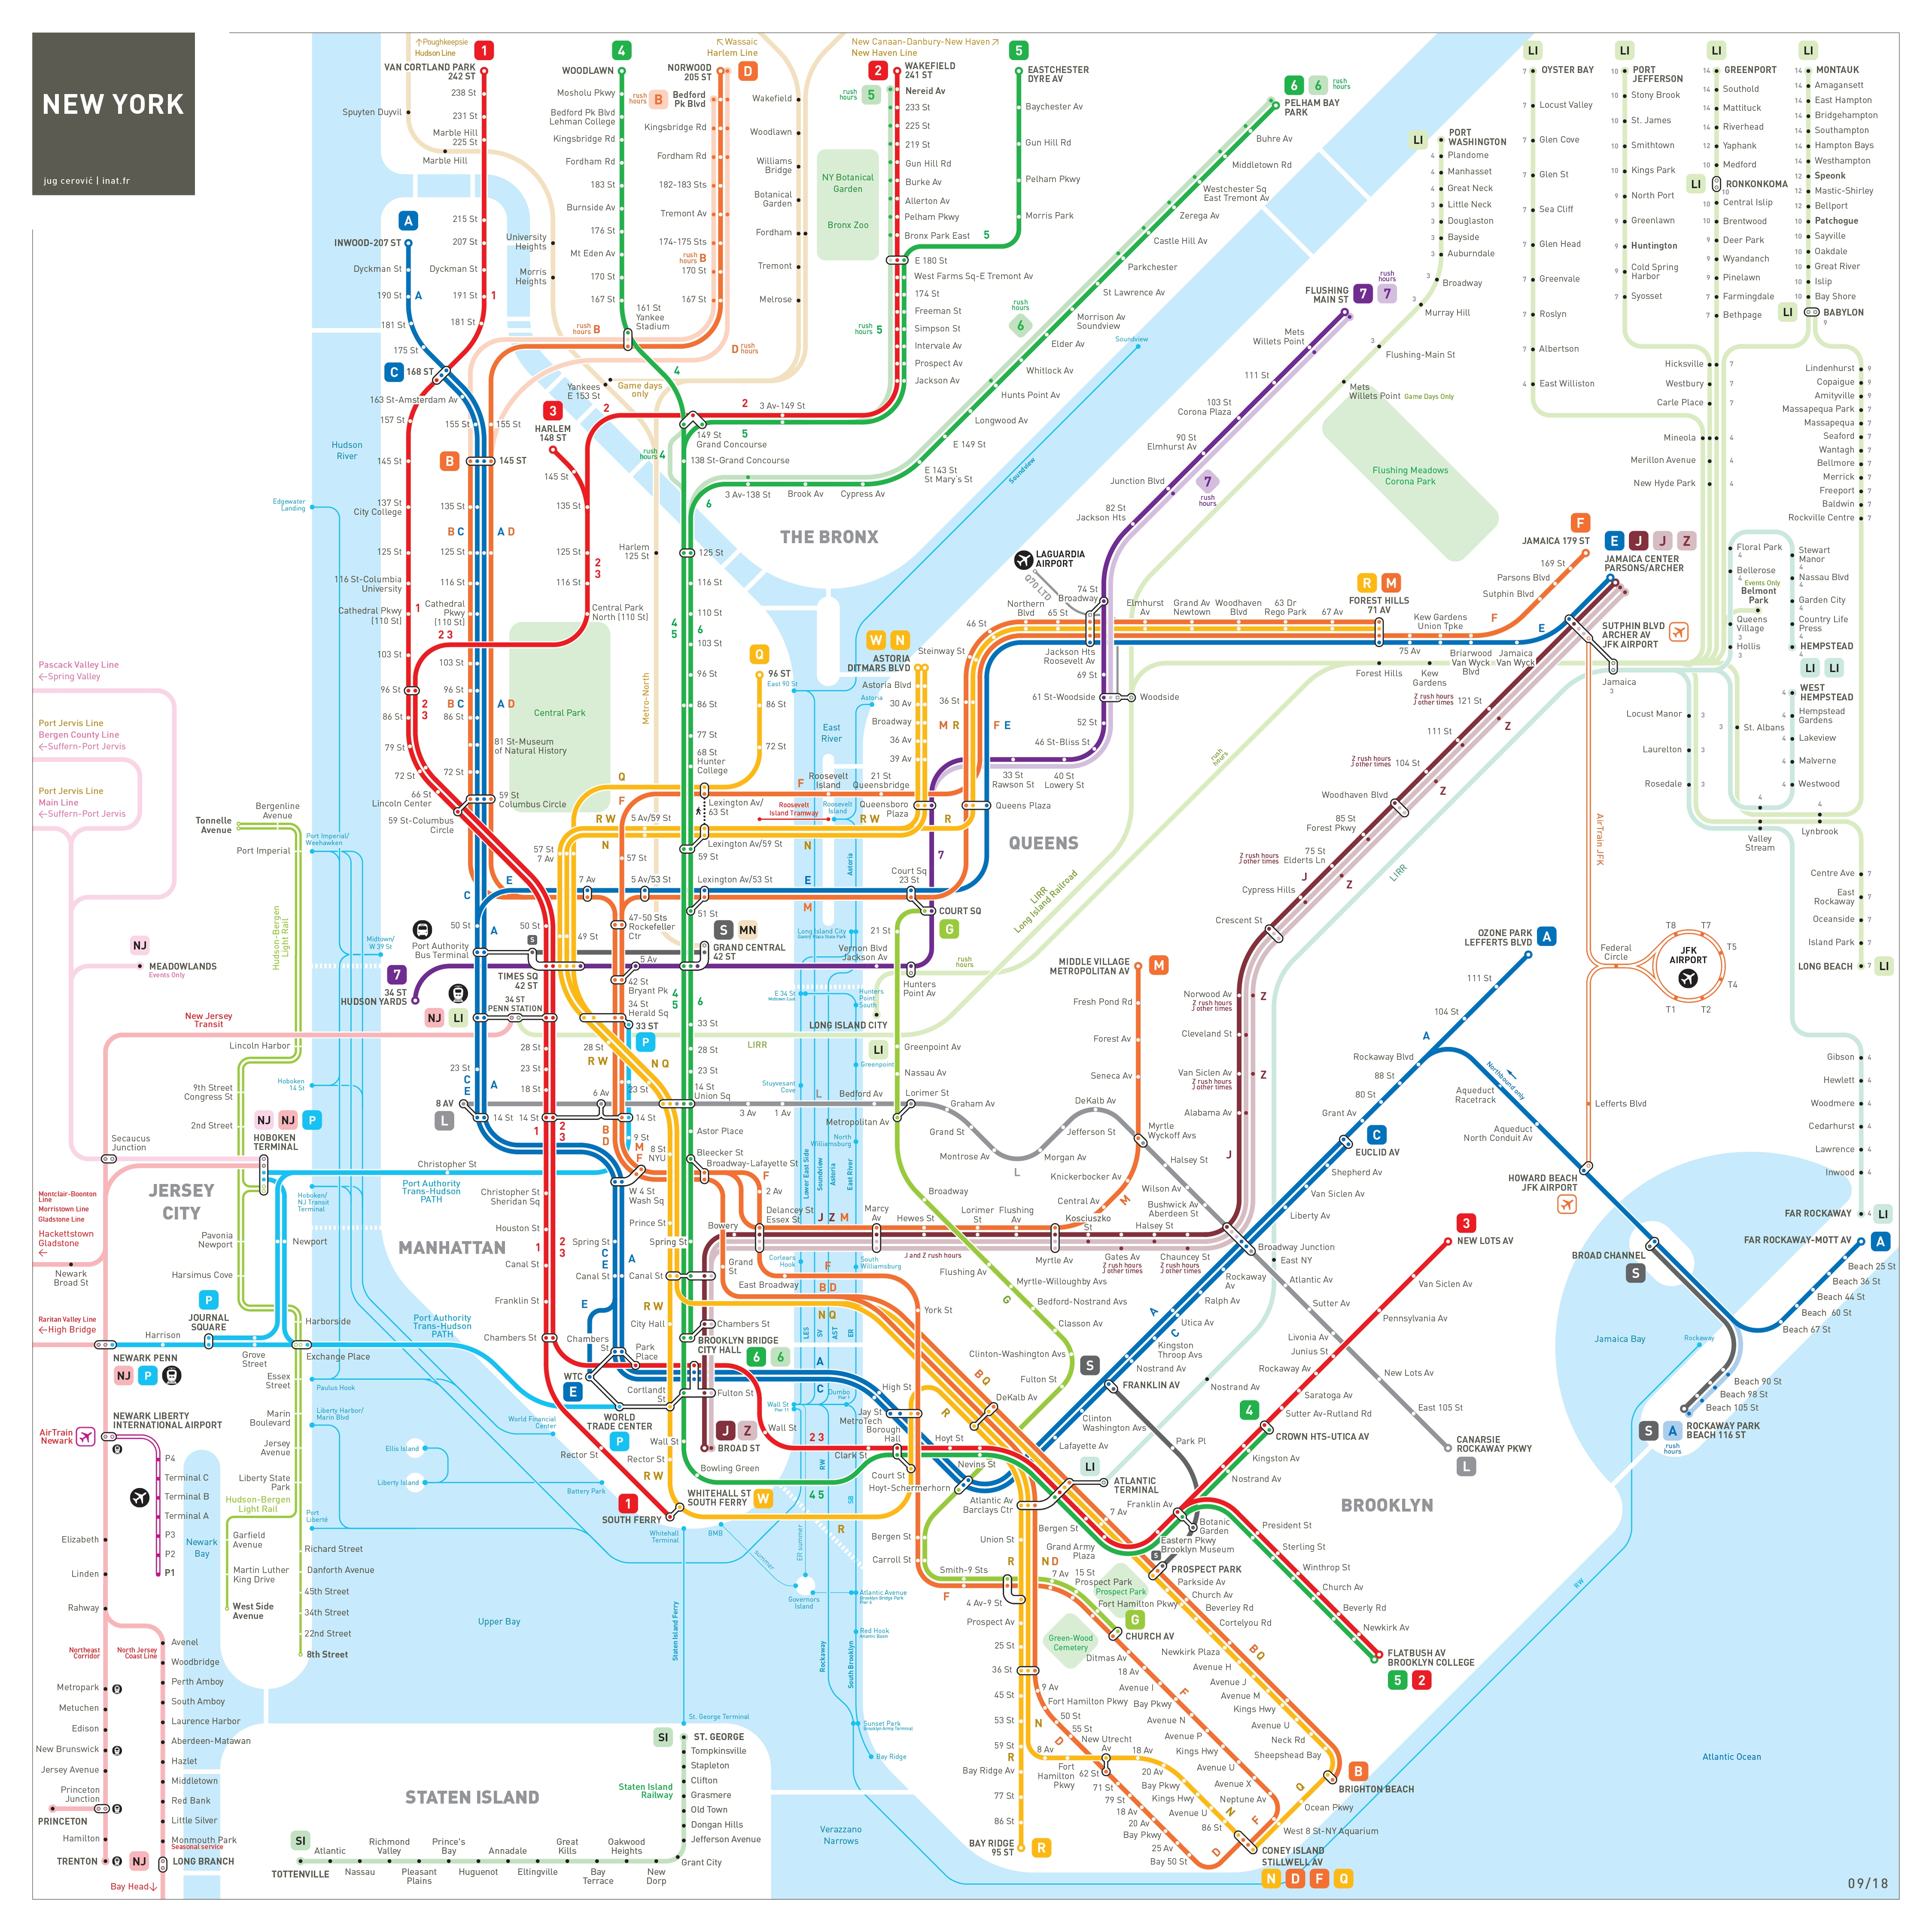 New York City Subway Map : Inat intended for Nyc Subway Map Wall Art (Image 8 of 20)